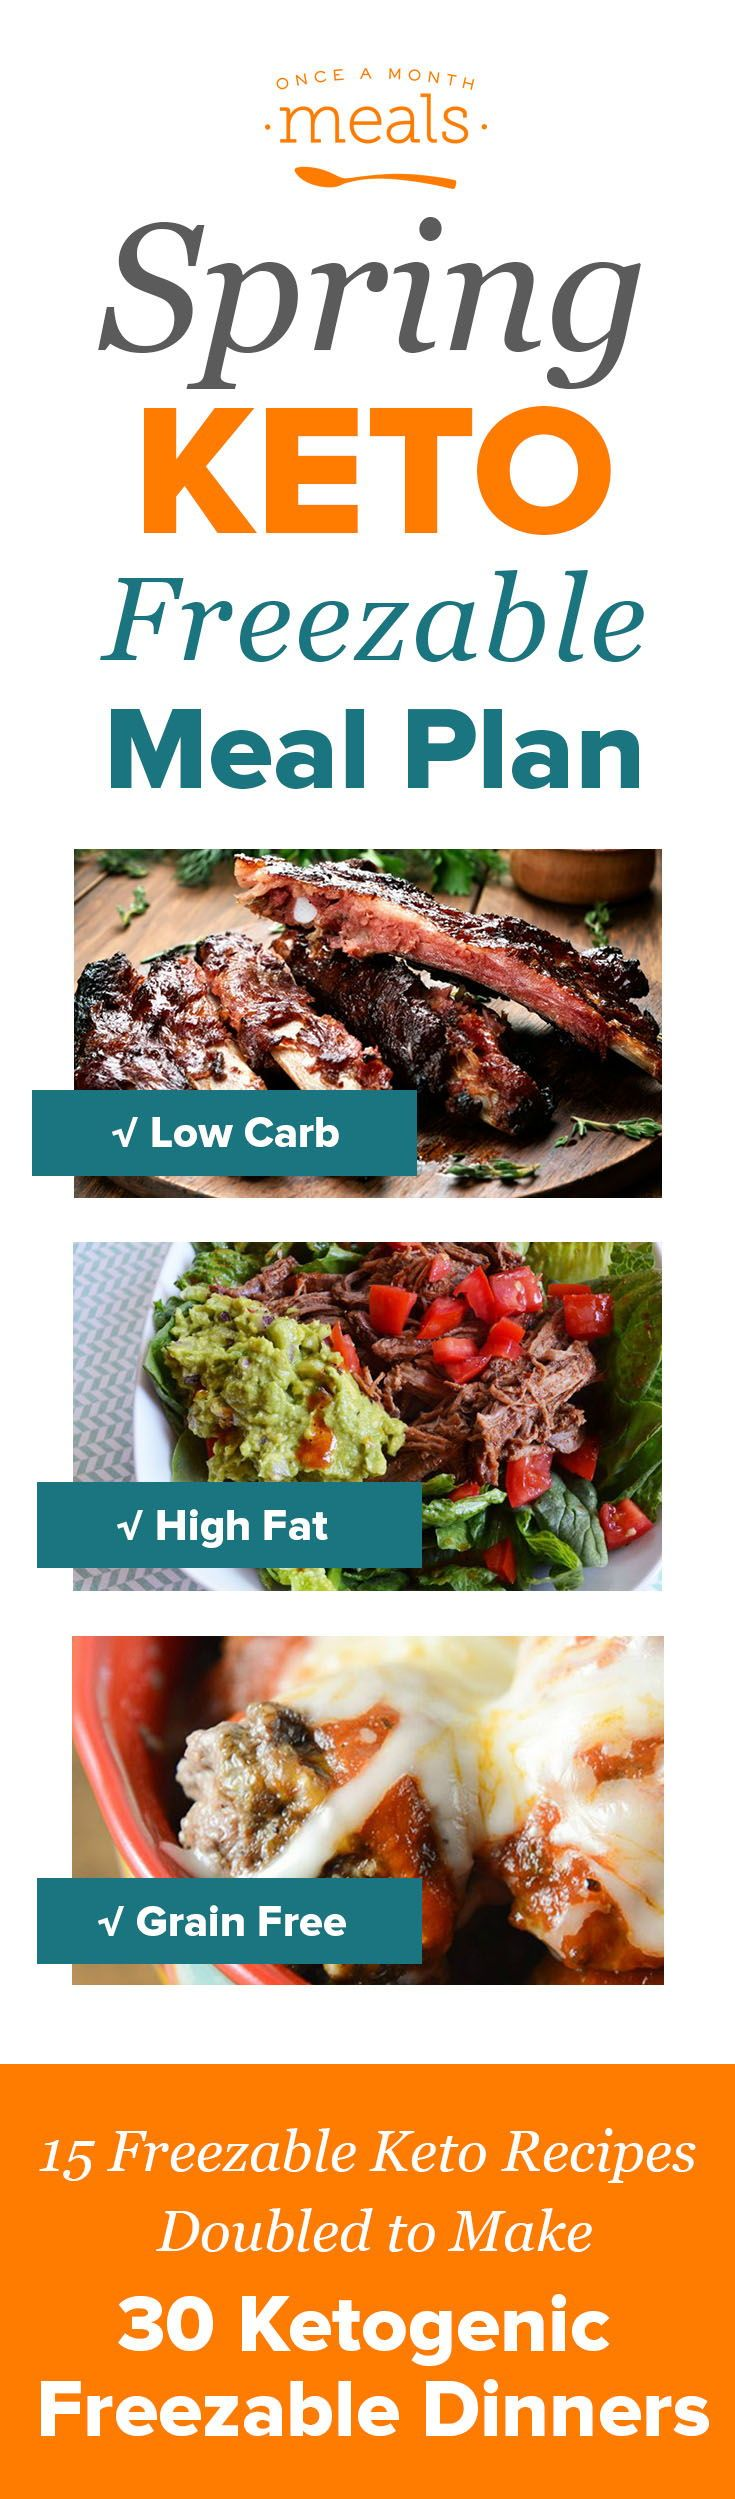 Sink your teeth into these delicious and easy Keto Freezer Meals. With options like Coffee Roast Beef, Chicken Caprese, and Meatball Parmesan, these high fat, low carb, and grain free dinners will sure to please even the pickiest of eaters! #FreezerMeals #Keto #LowCarb